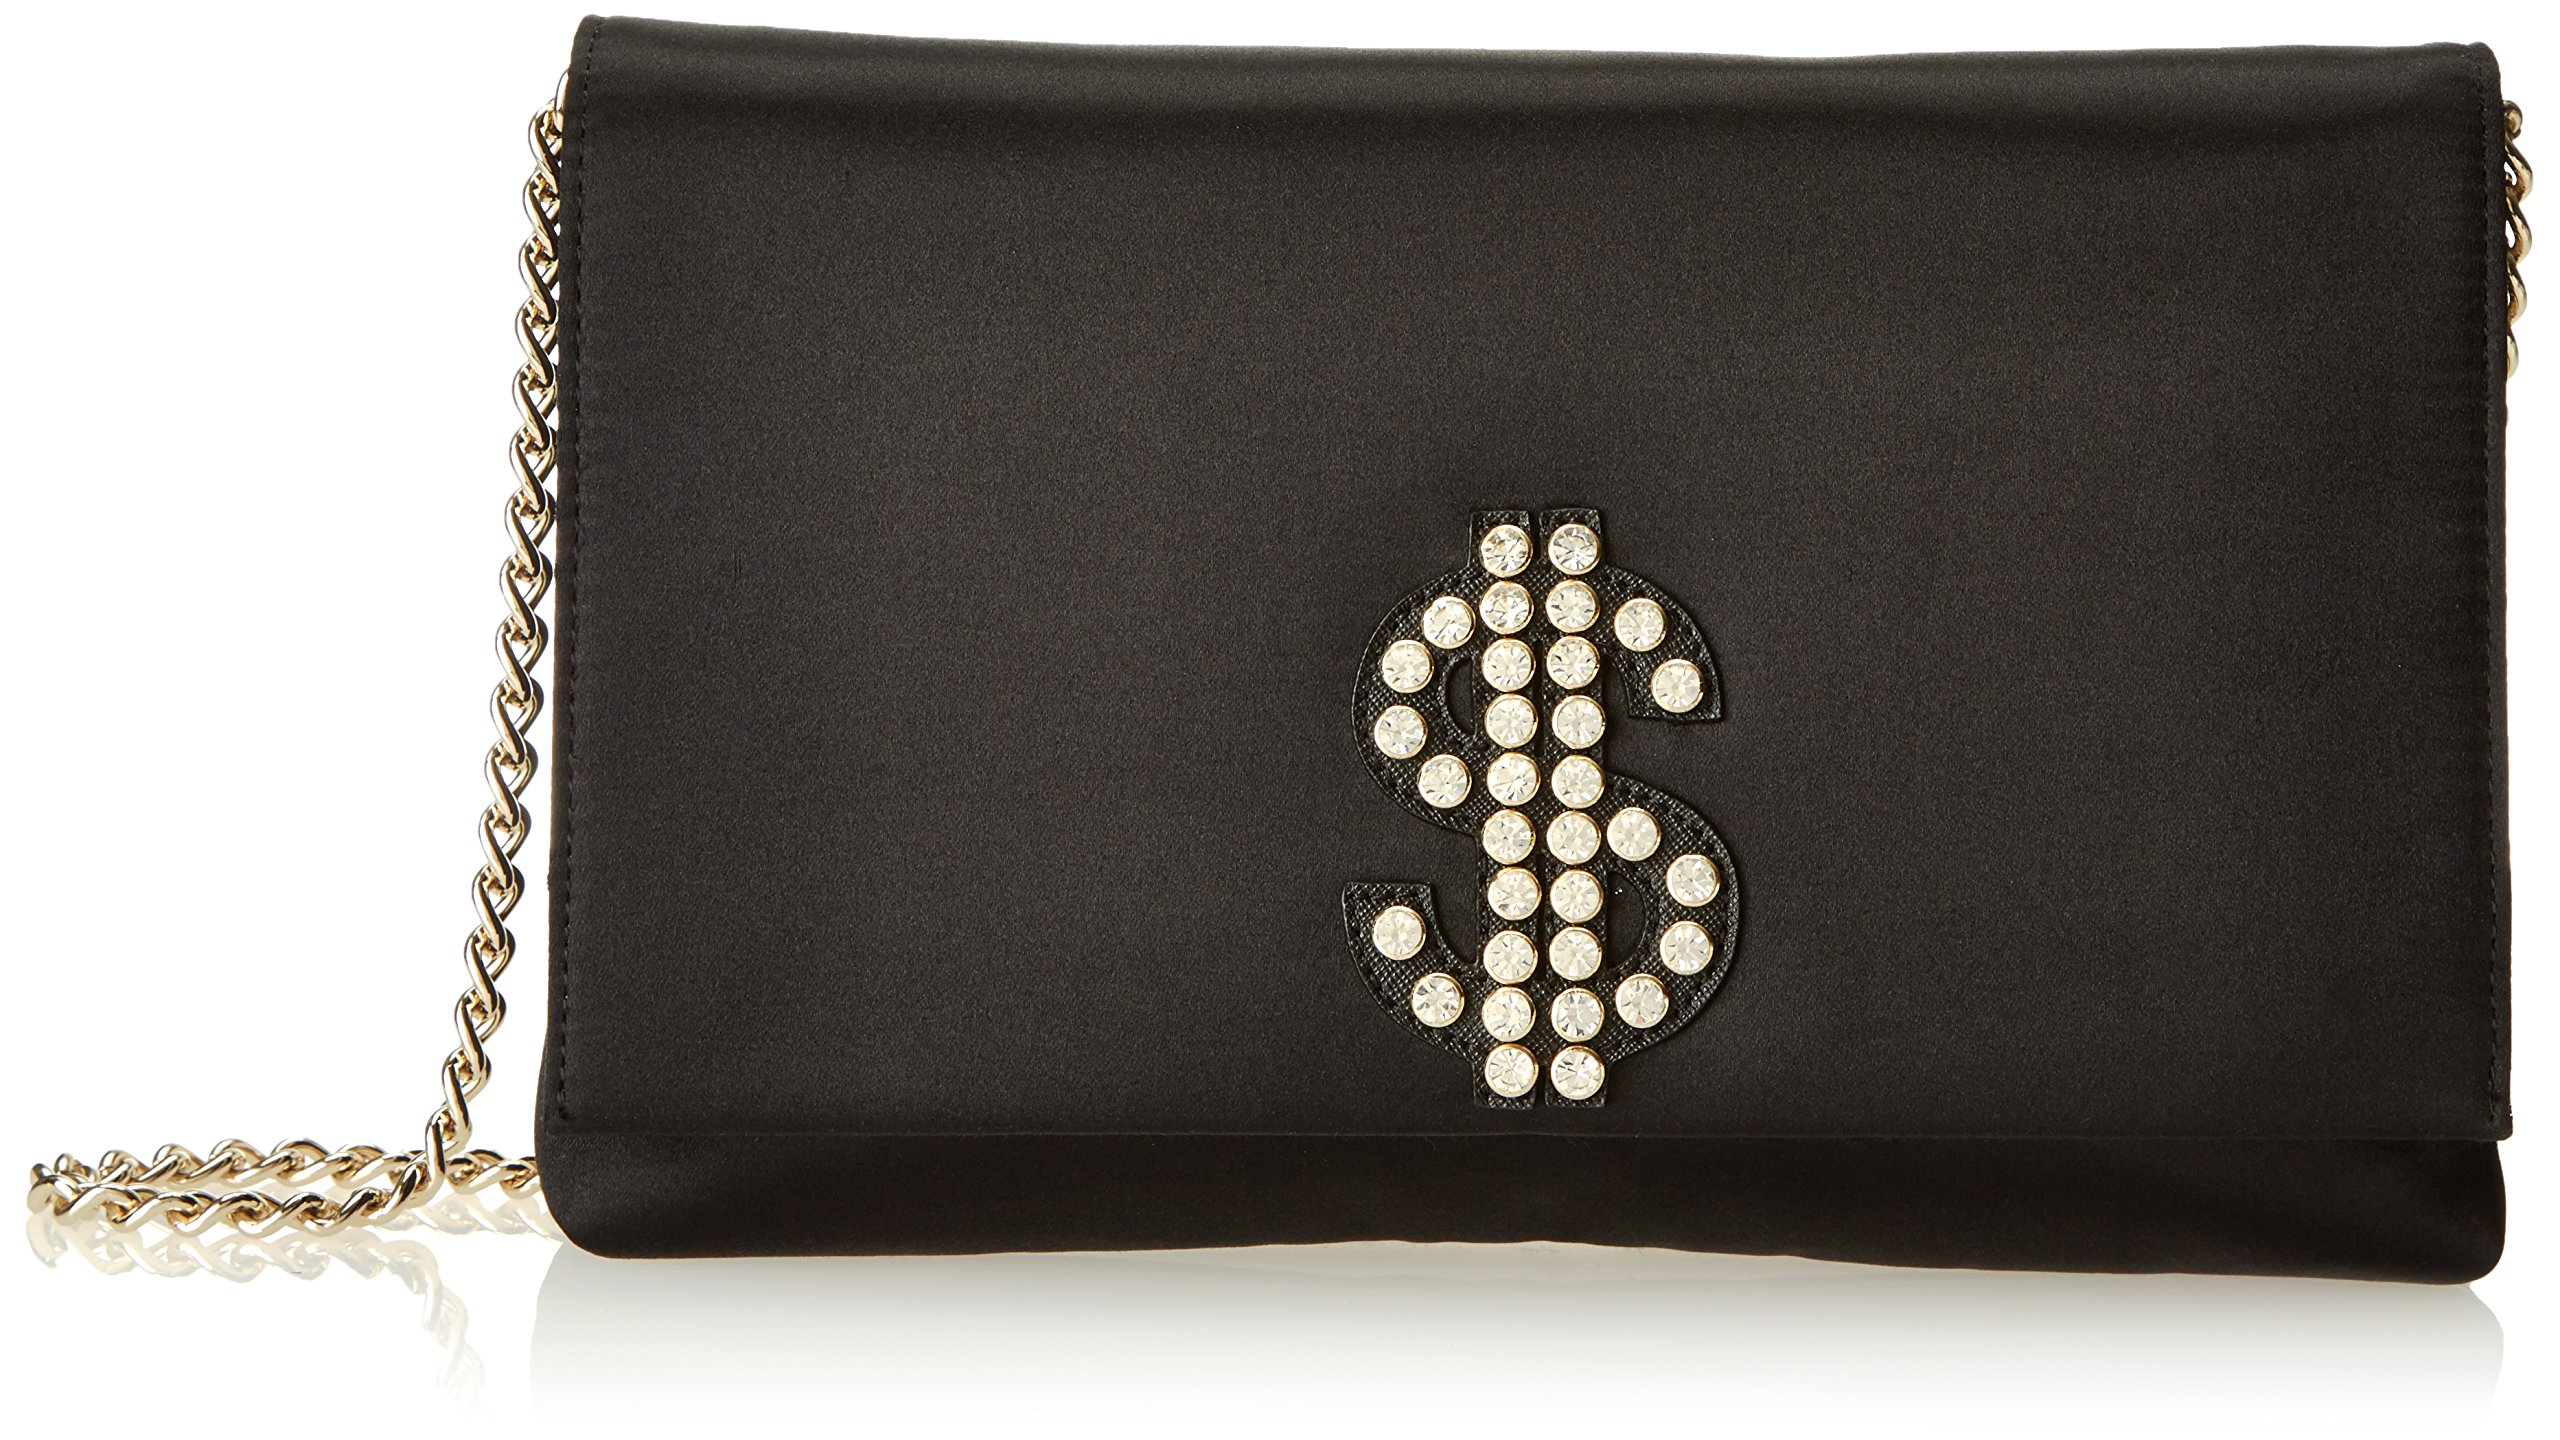 kate spade new york Place Your Bets Gena Clutch, Dollar Sign, One Size